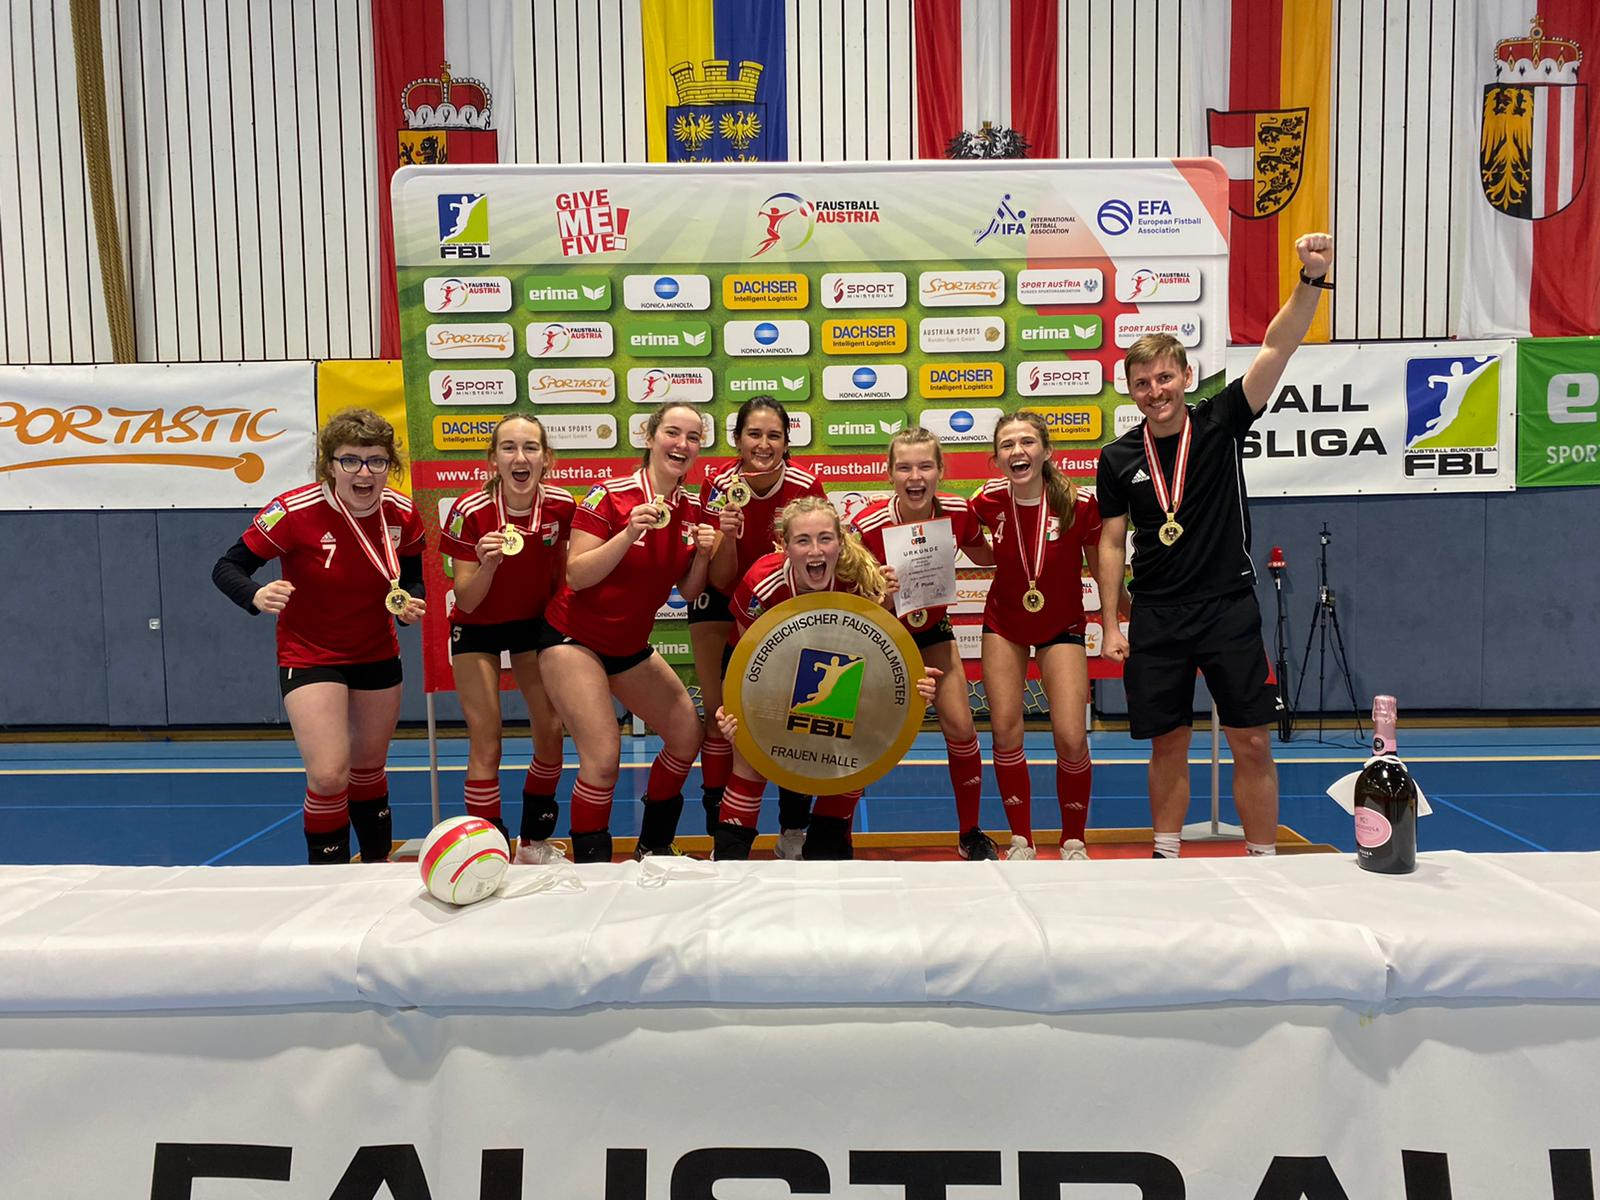 Seekirchens Wildcats holen mit unglaublicher Performance Staatsmeistertitel!